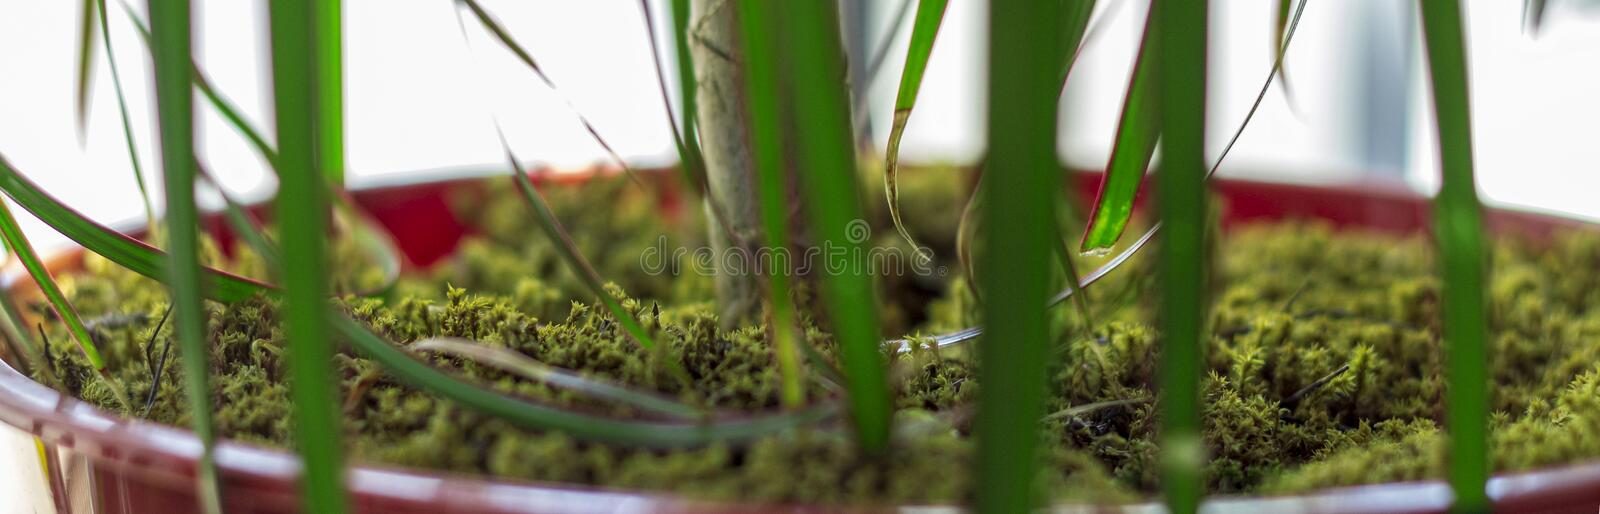 Green moss covered flower pot. Green moss-covered pots create a more natural environment in interiors. You may add moss your pot during home decatoration stock image